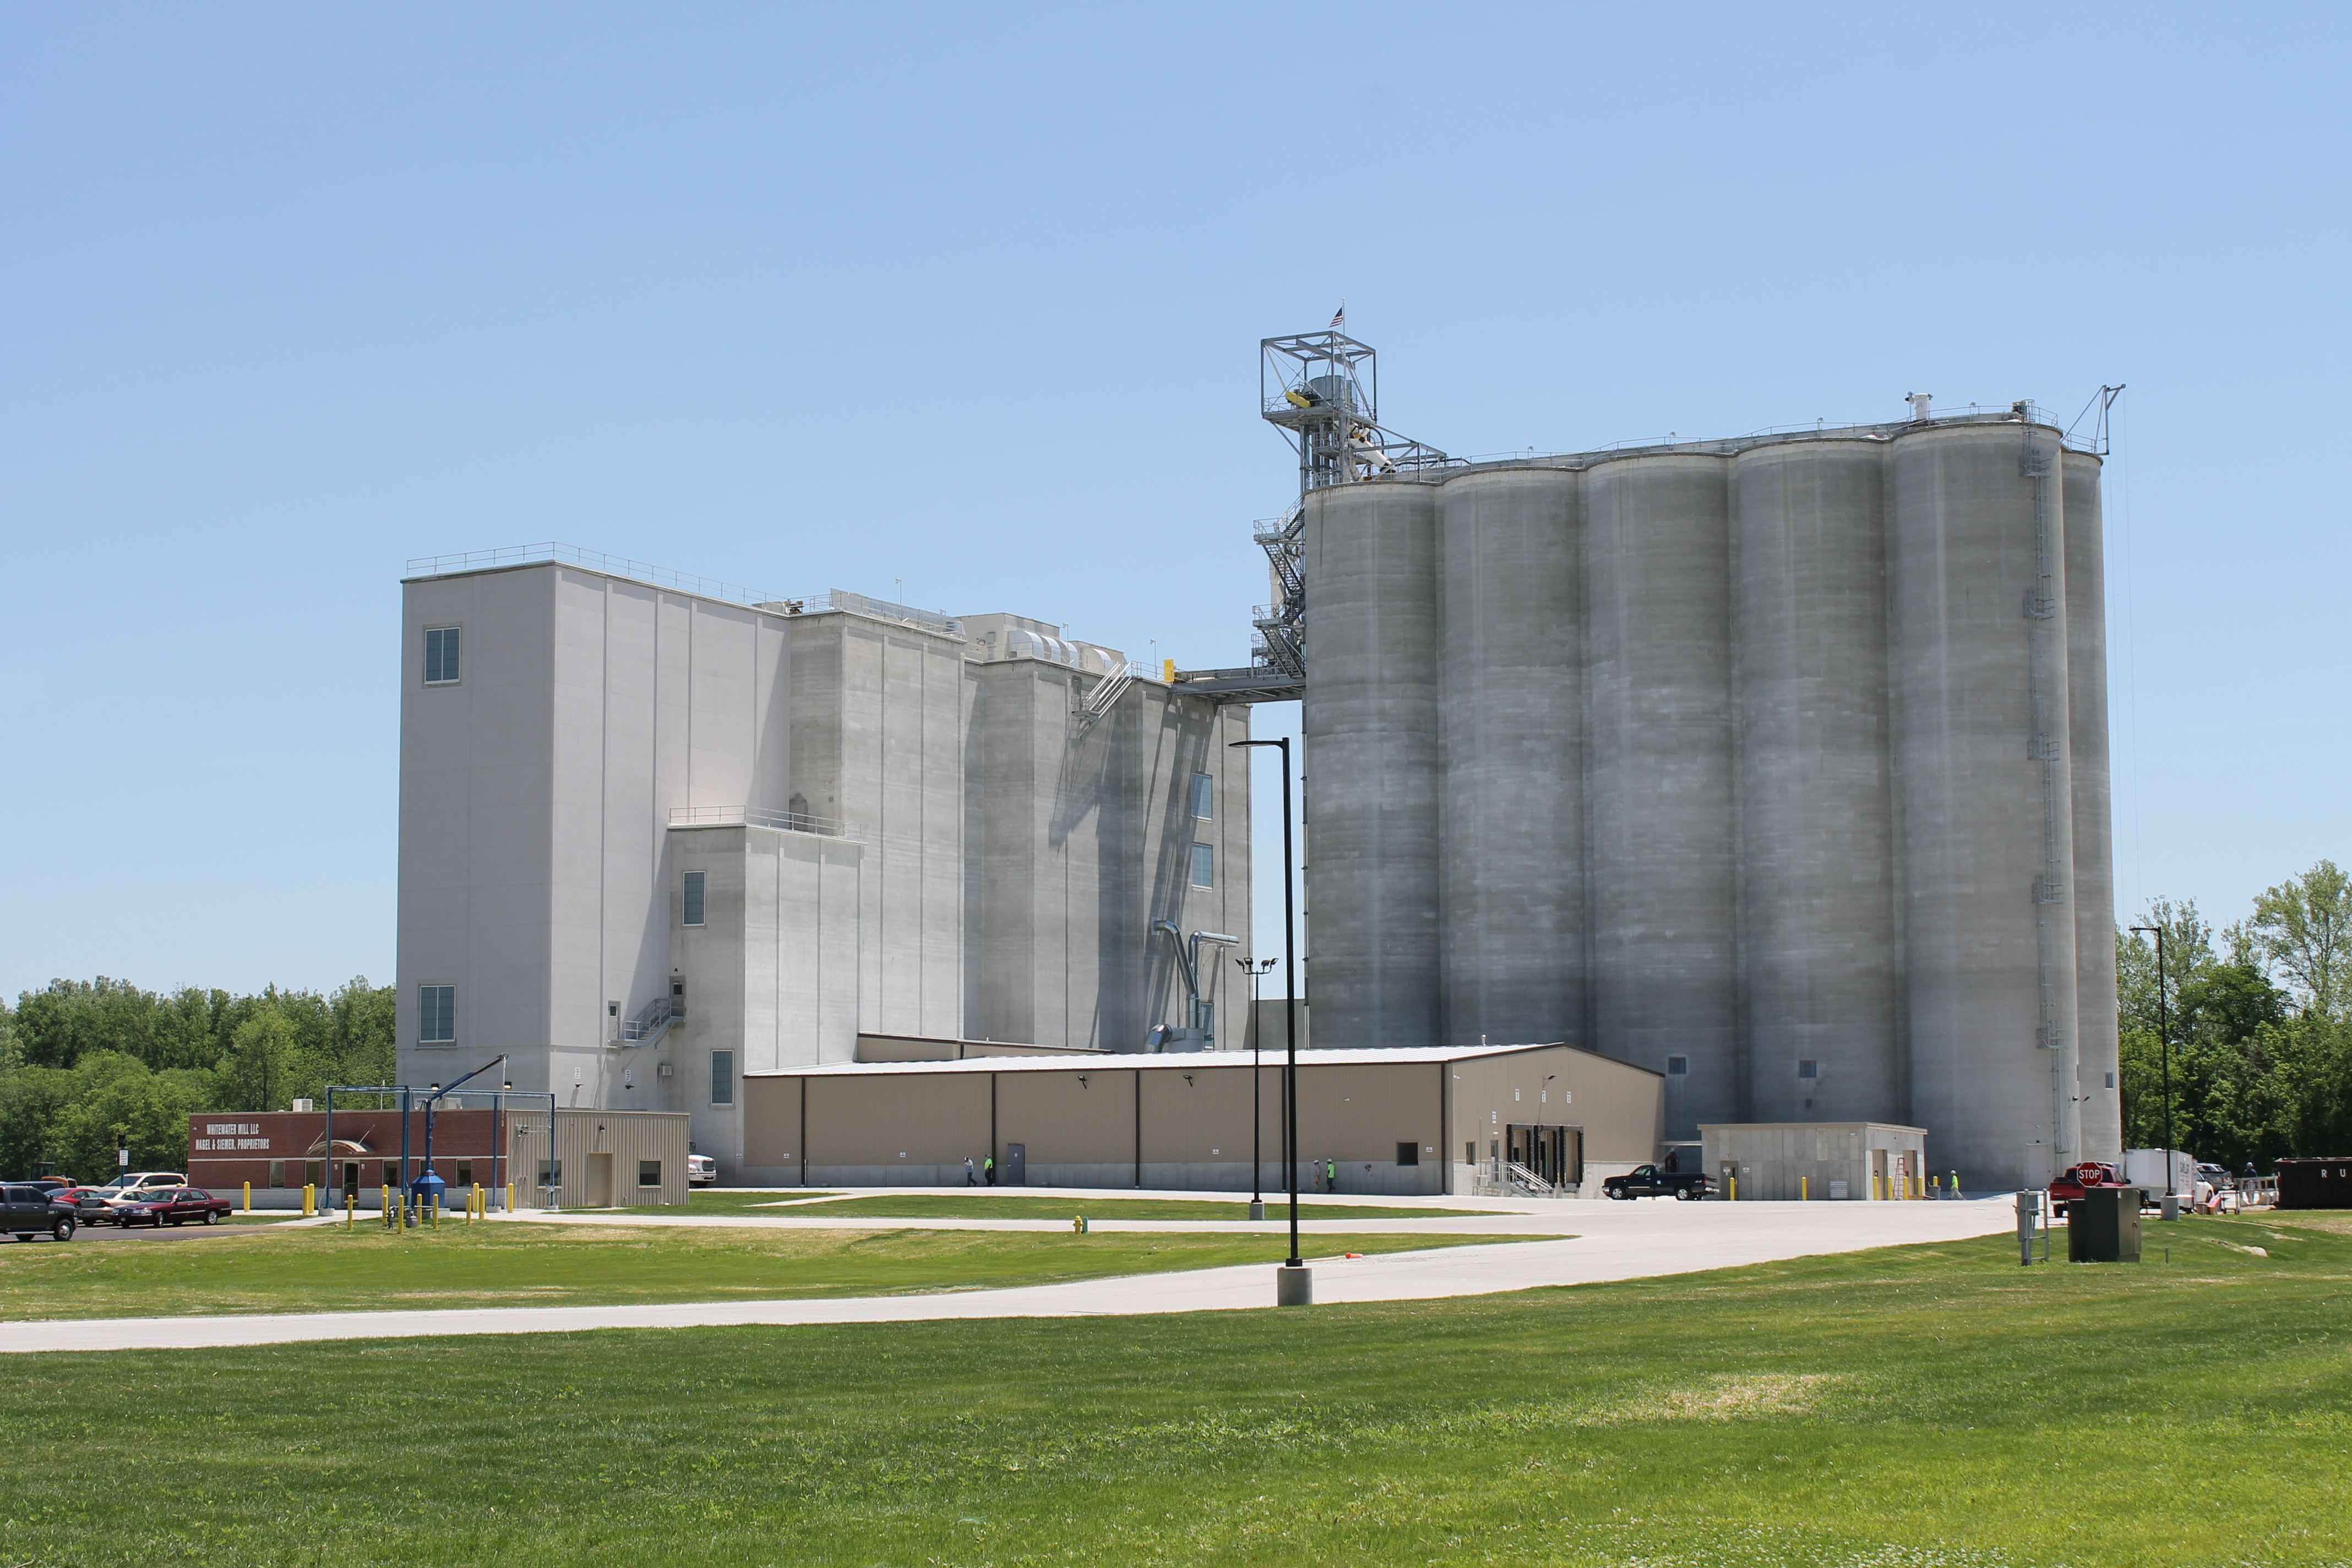 A third mill facility was opened in West Harrison, IN